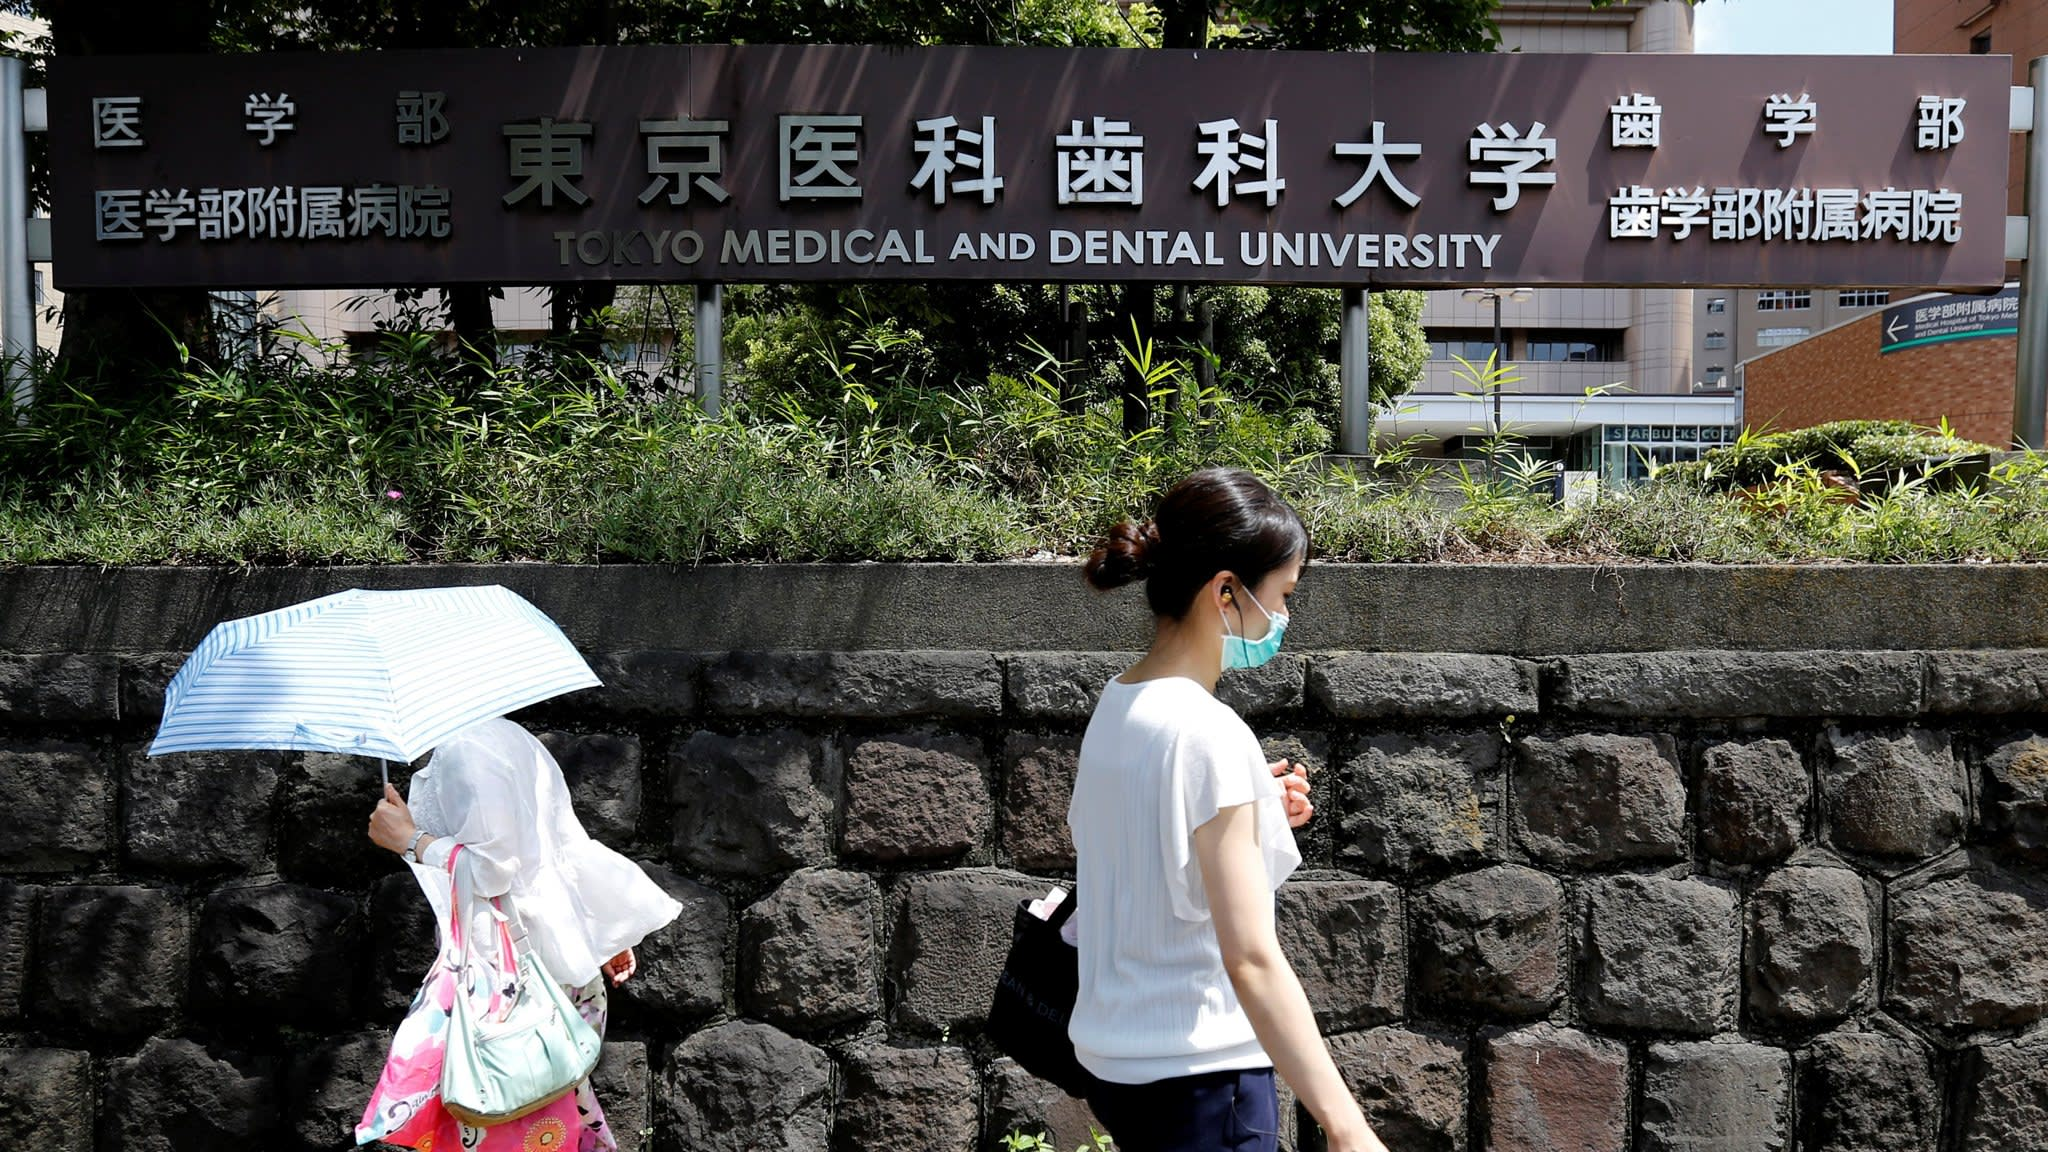 Japan medical school hit by claim it lowered women's exam results